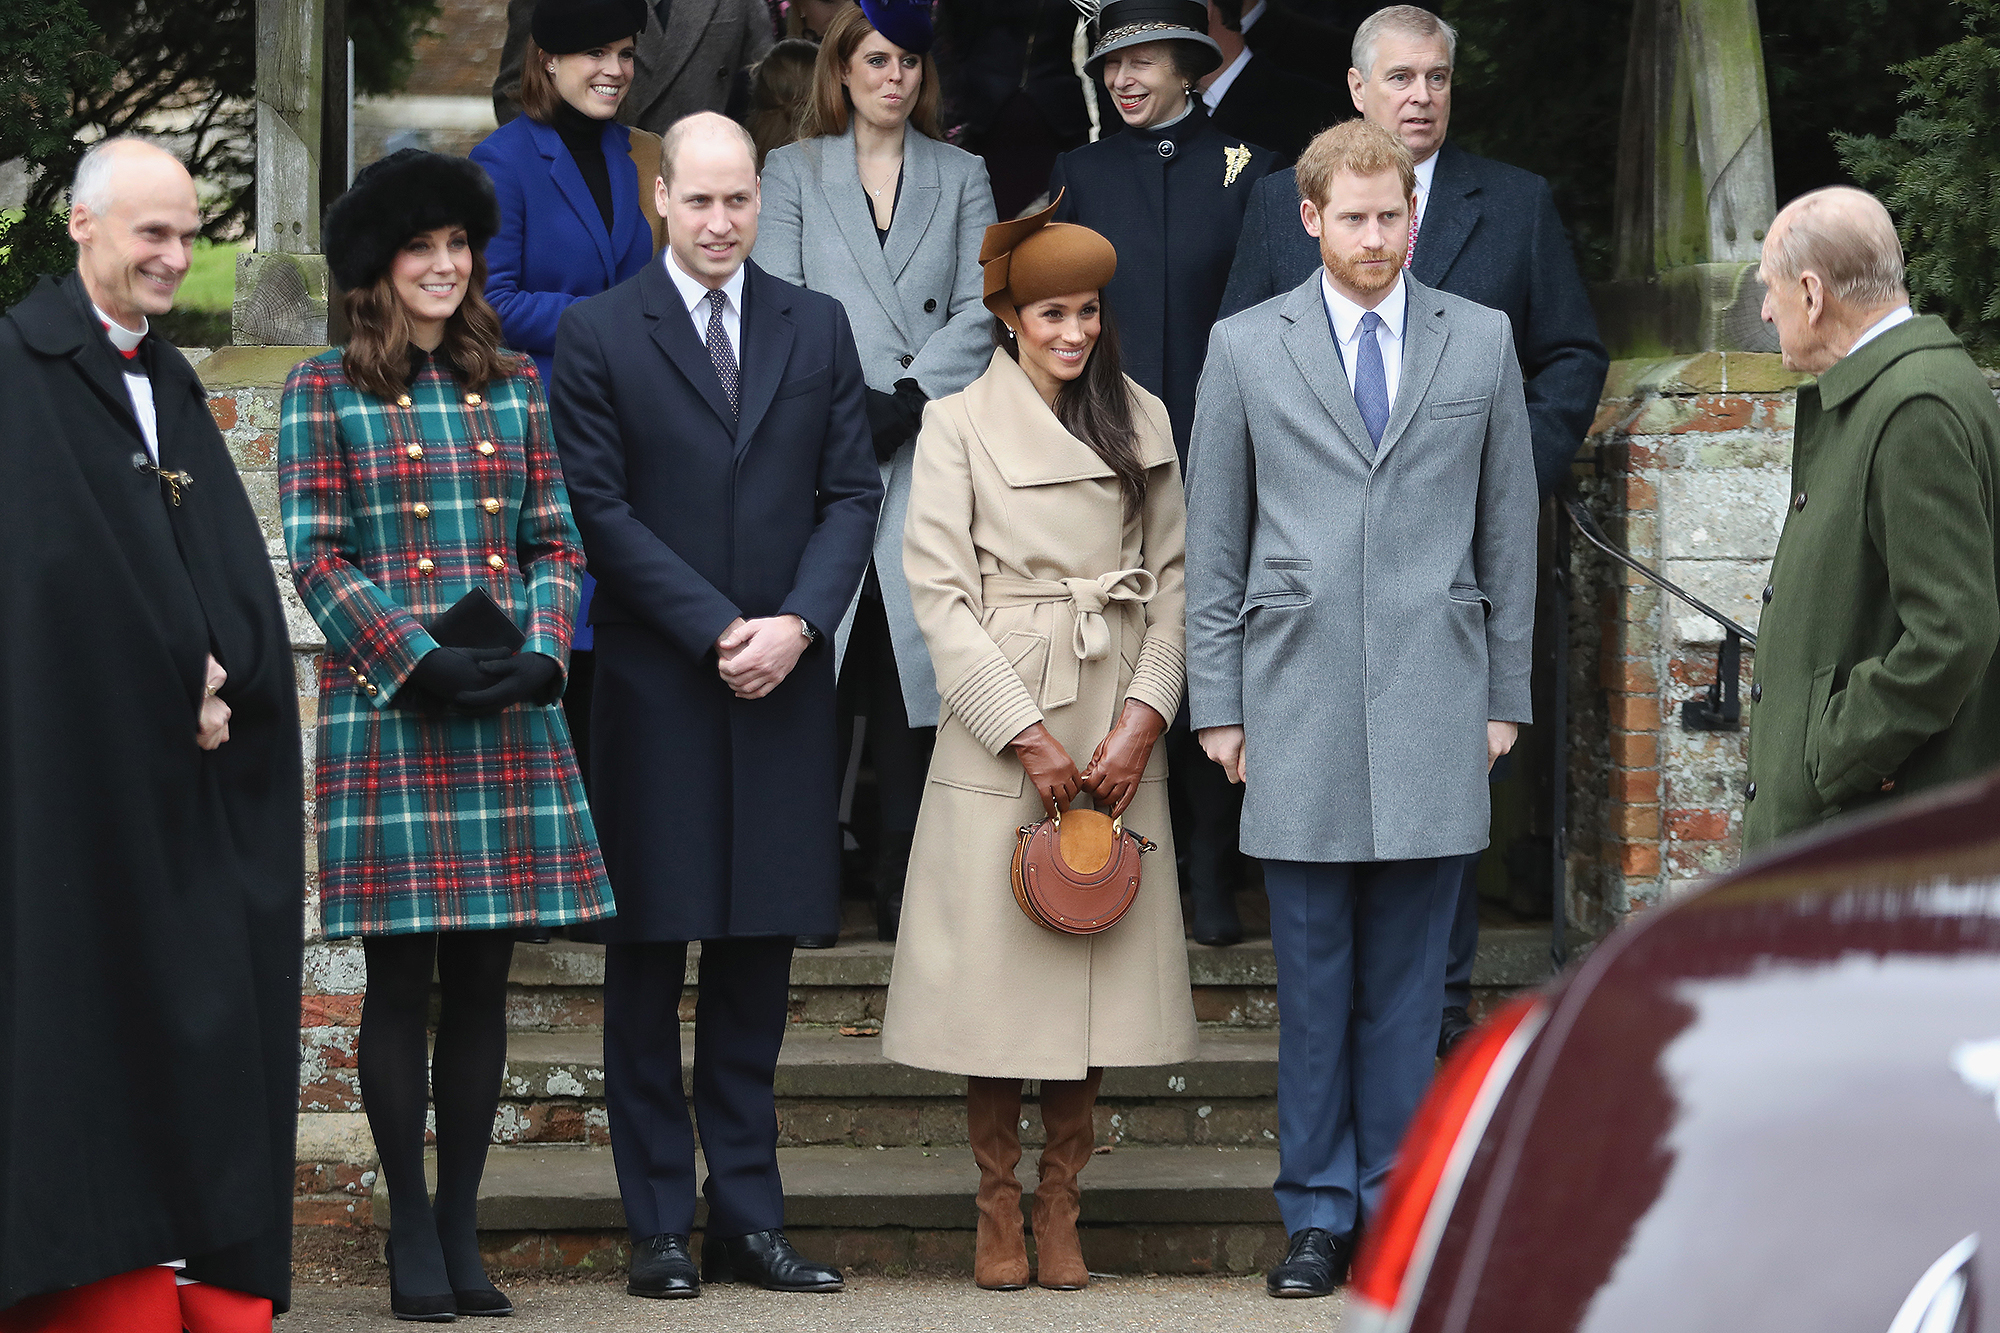 Meghan and Harry Won't Stay with Kate and William This Christmas: Reports